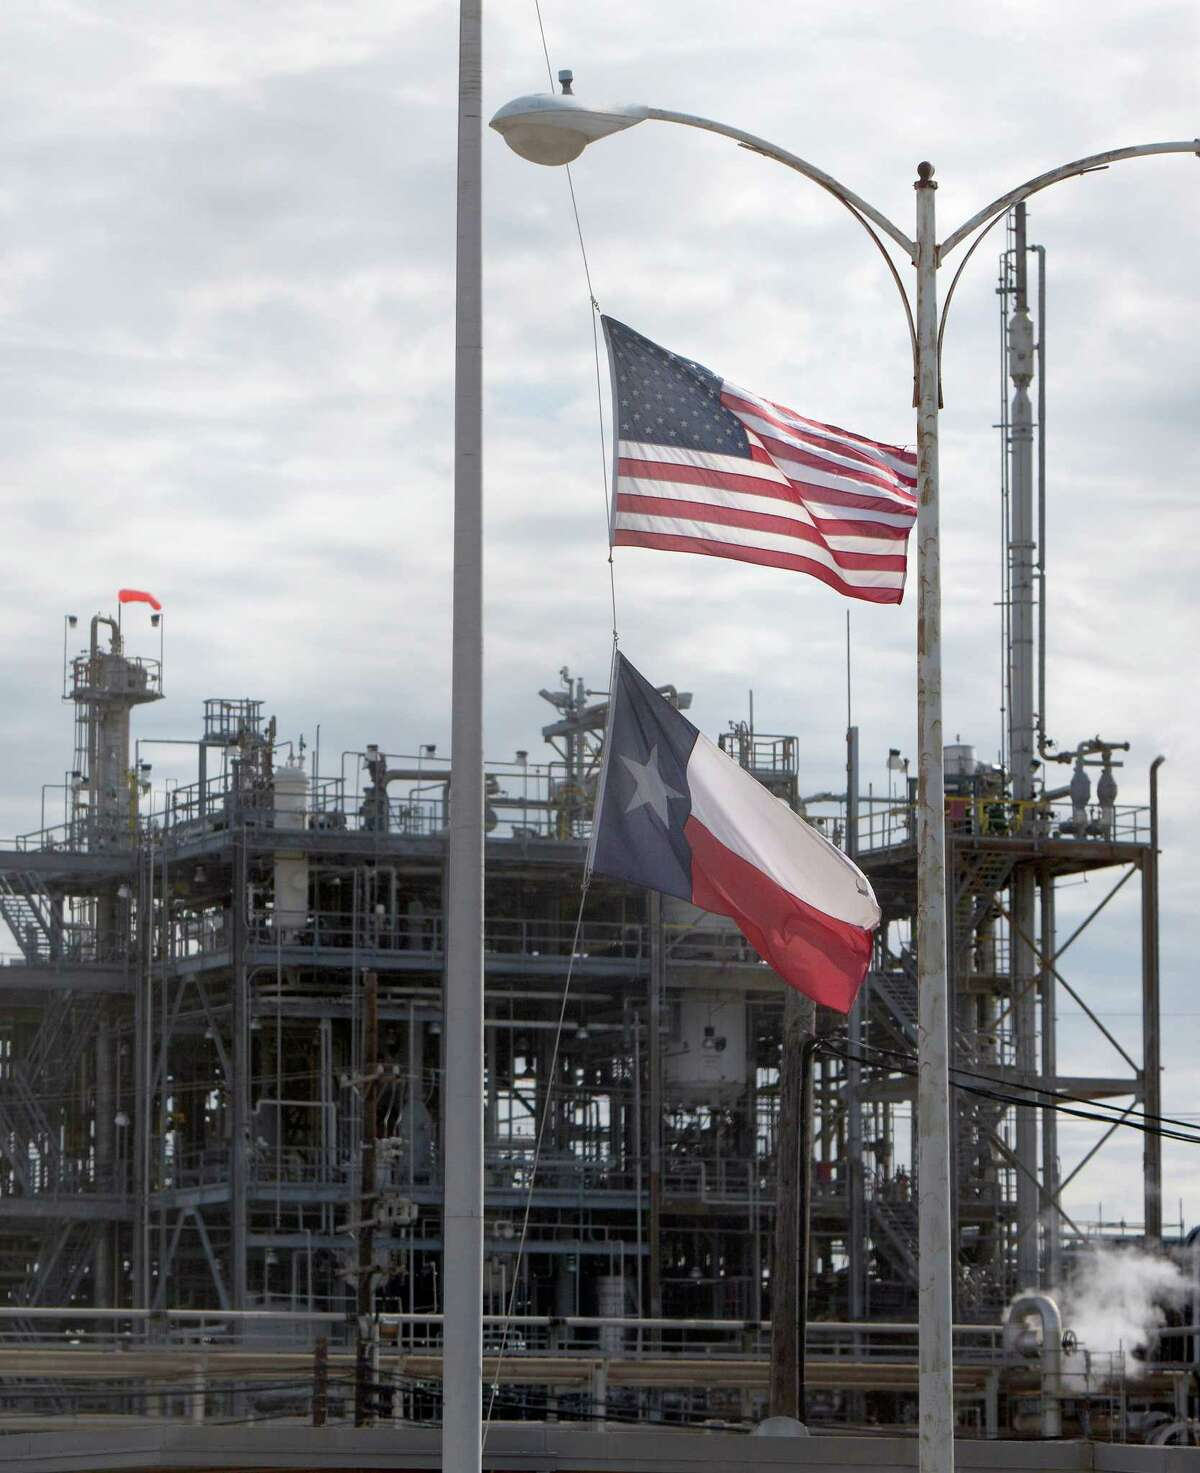 Flags at the DuPont plant in La Porte fly at half-staff in November 2015, a year after the gas leak that left four dead. The accident led to a federal probe that faulted safety practices companywide.